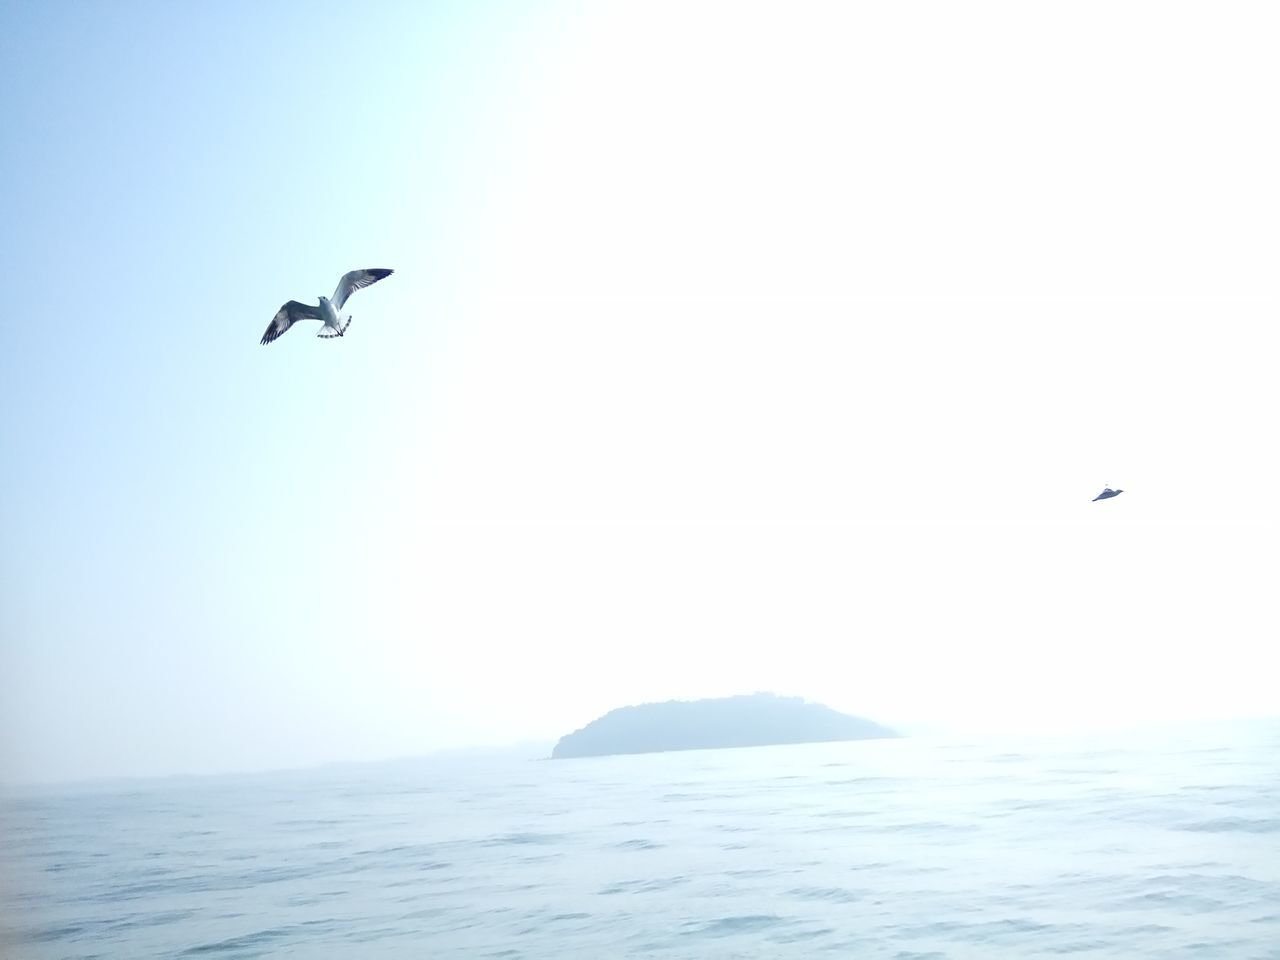 bird, flying, animals in the wild, animal themes, mid-air, one animal, spread wings, animal wildlife, sea, nature, beauty in nature, clear sky, seagull, water, outdoors, wildlife, day, waterfront, scenics, sea bird, tranquil scene, motion, no people, tranquility, horizon over water, sky